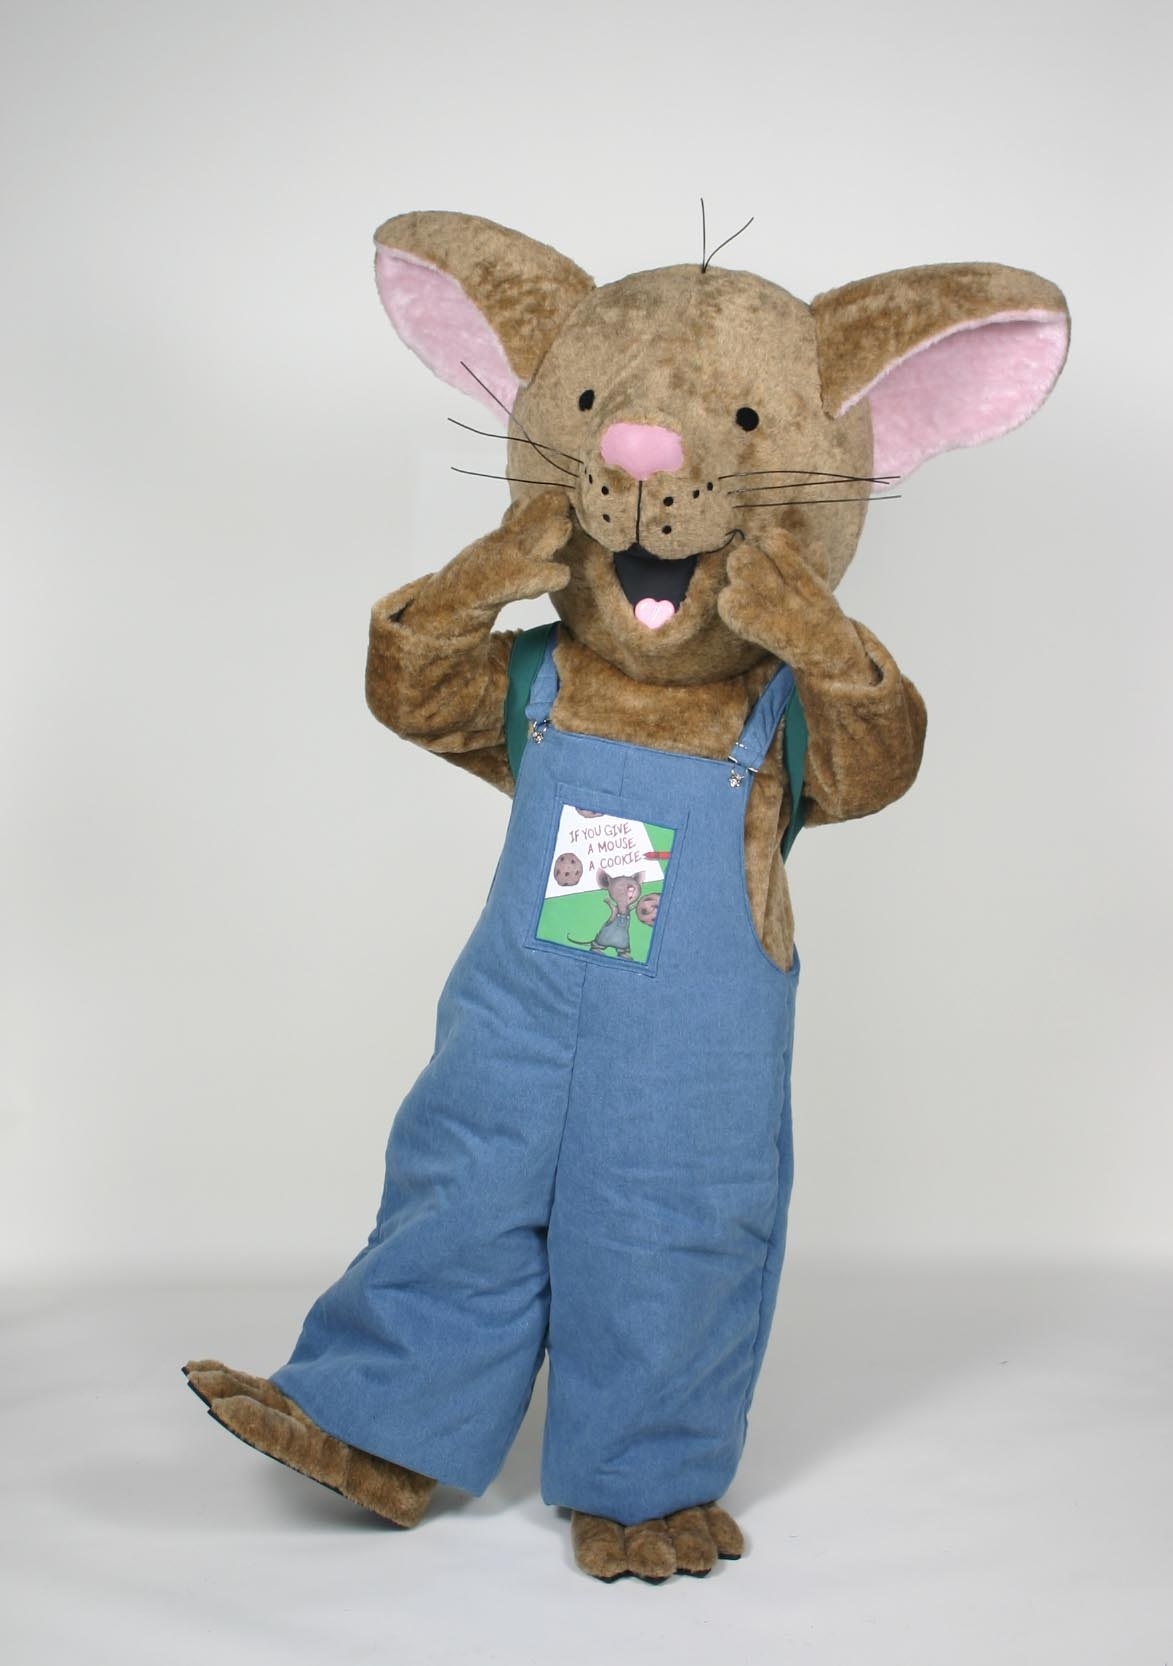 Mouse character wearing overalls